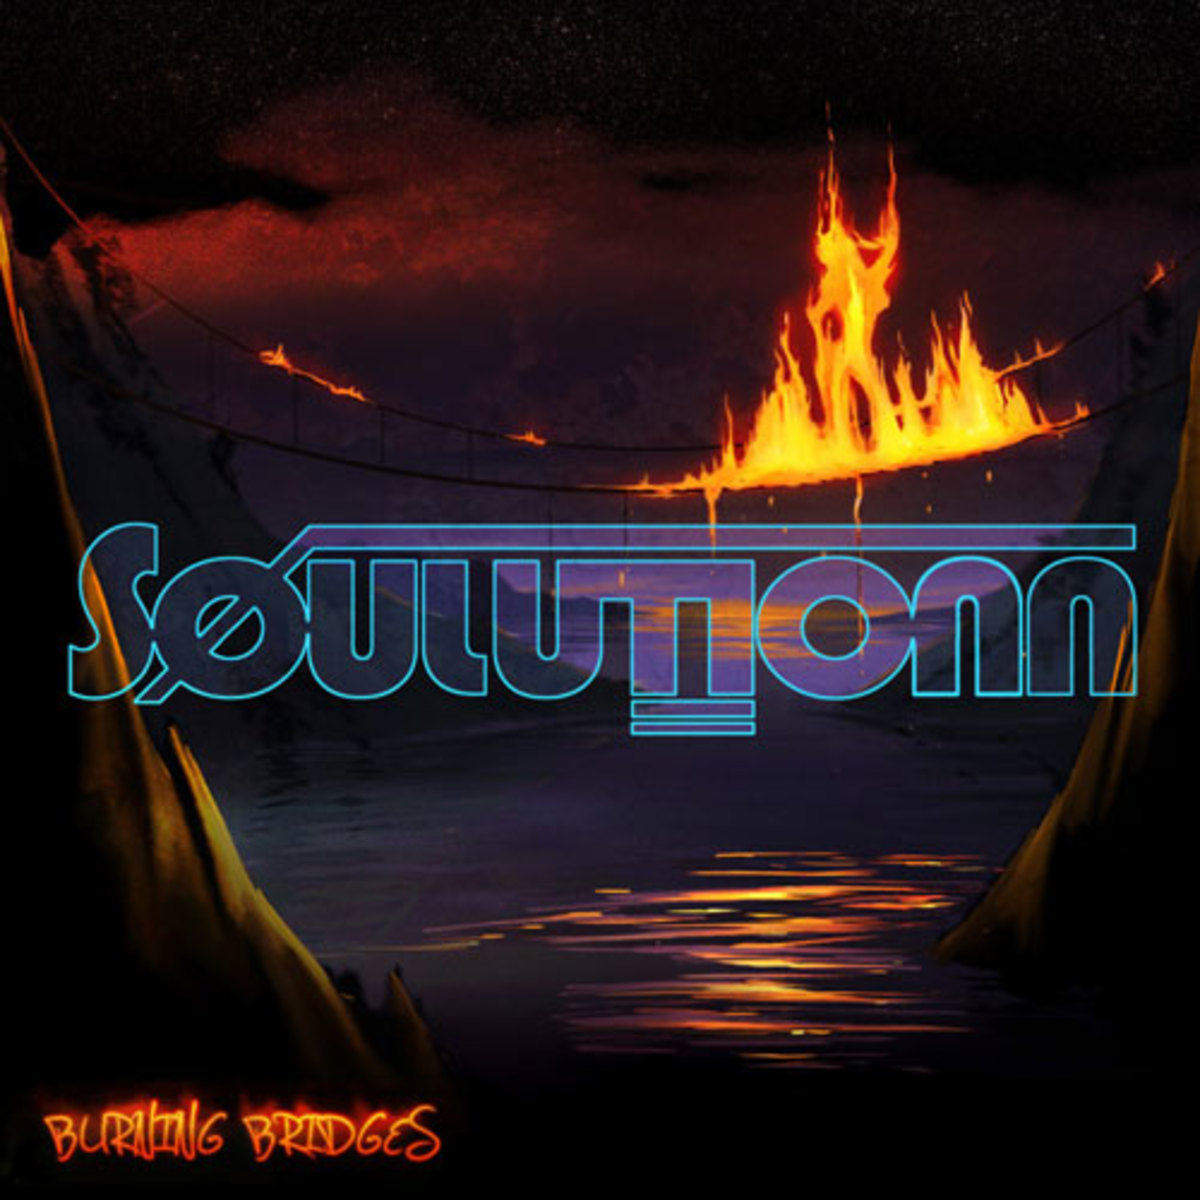 soulutionn-burningbridges.jpg